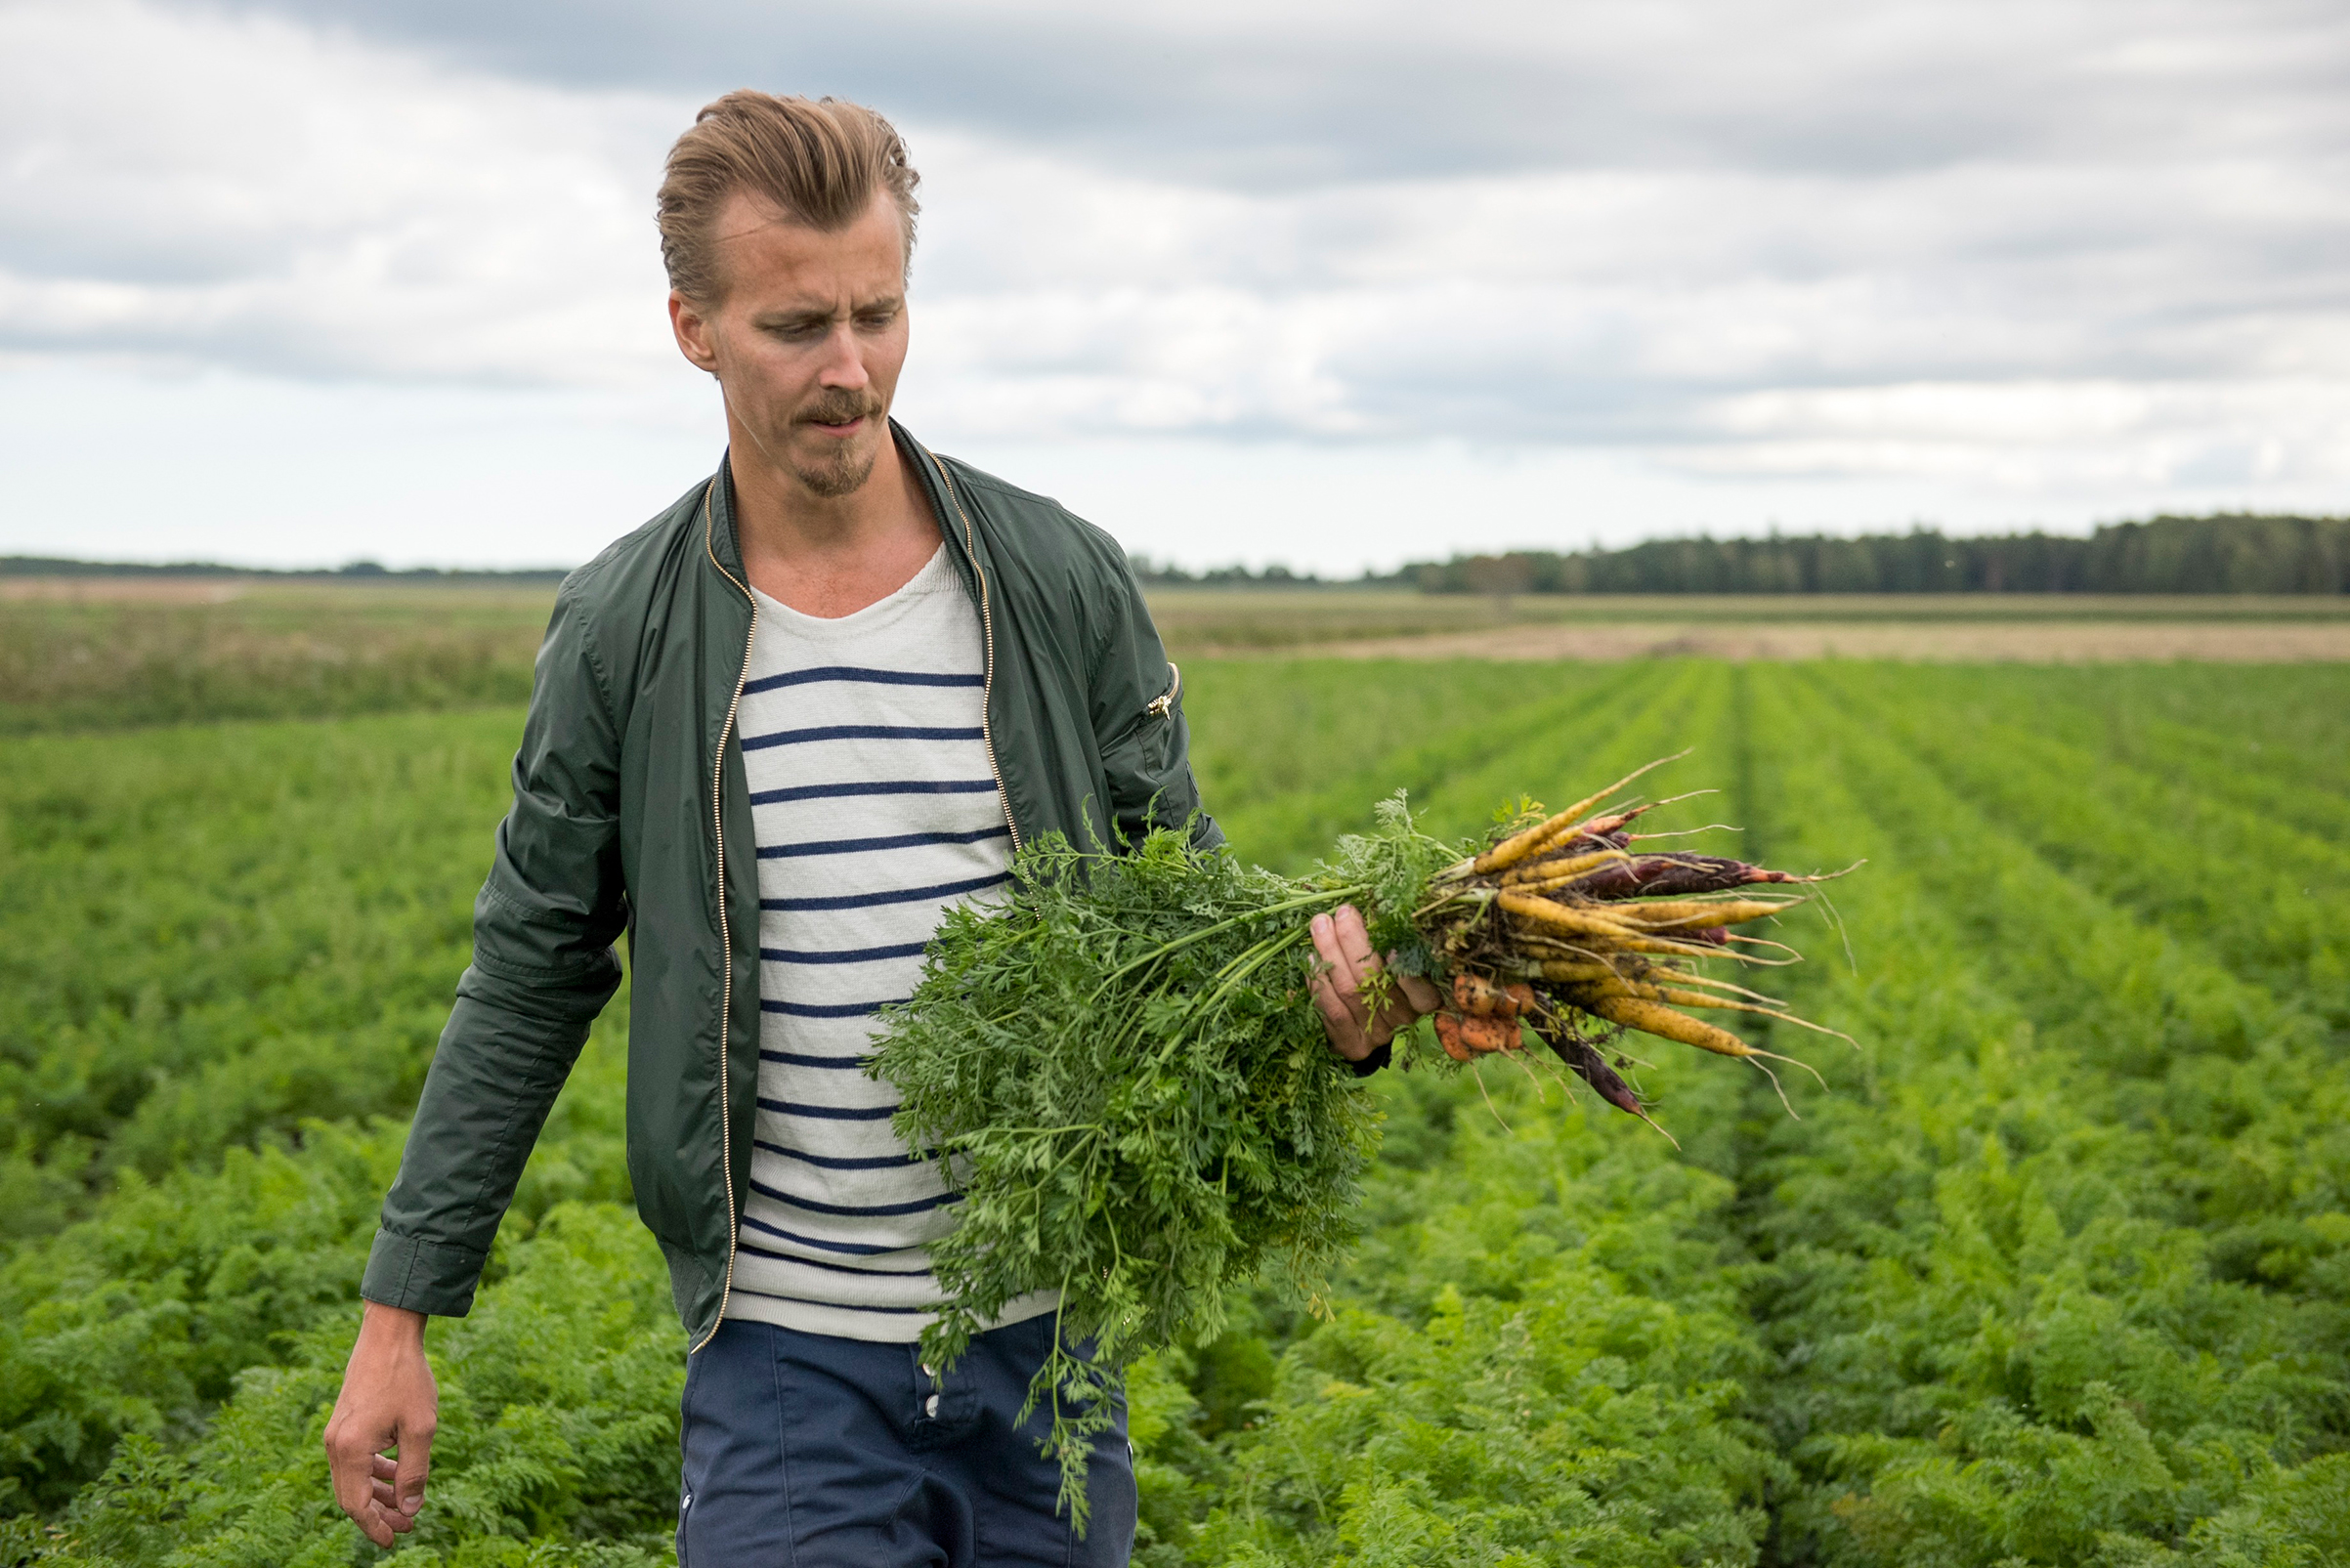 Svensson wants to raise the status of vegetables